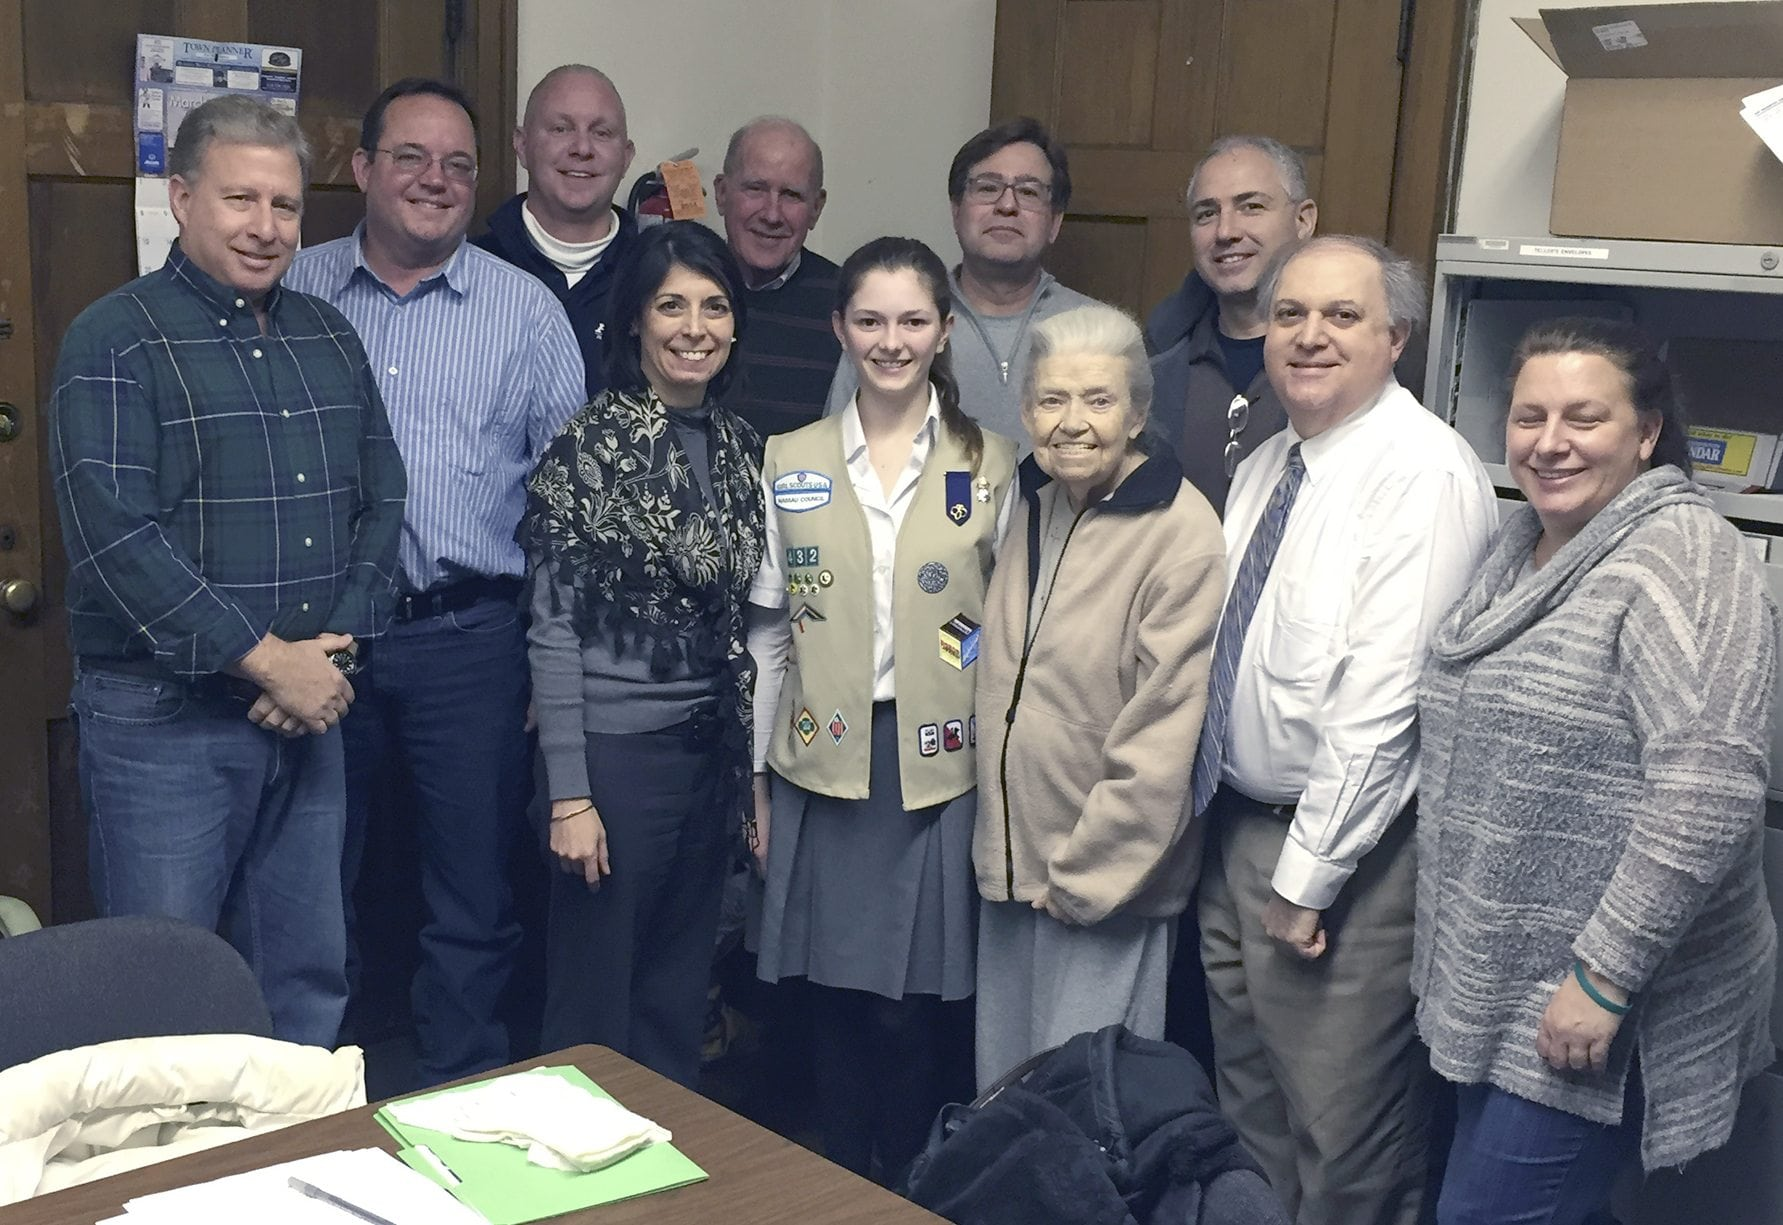 Olivia Moss with members of the Greater Port Washington Business Improvement District (Credit: Port Washington News)